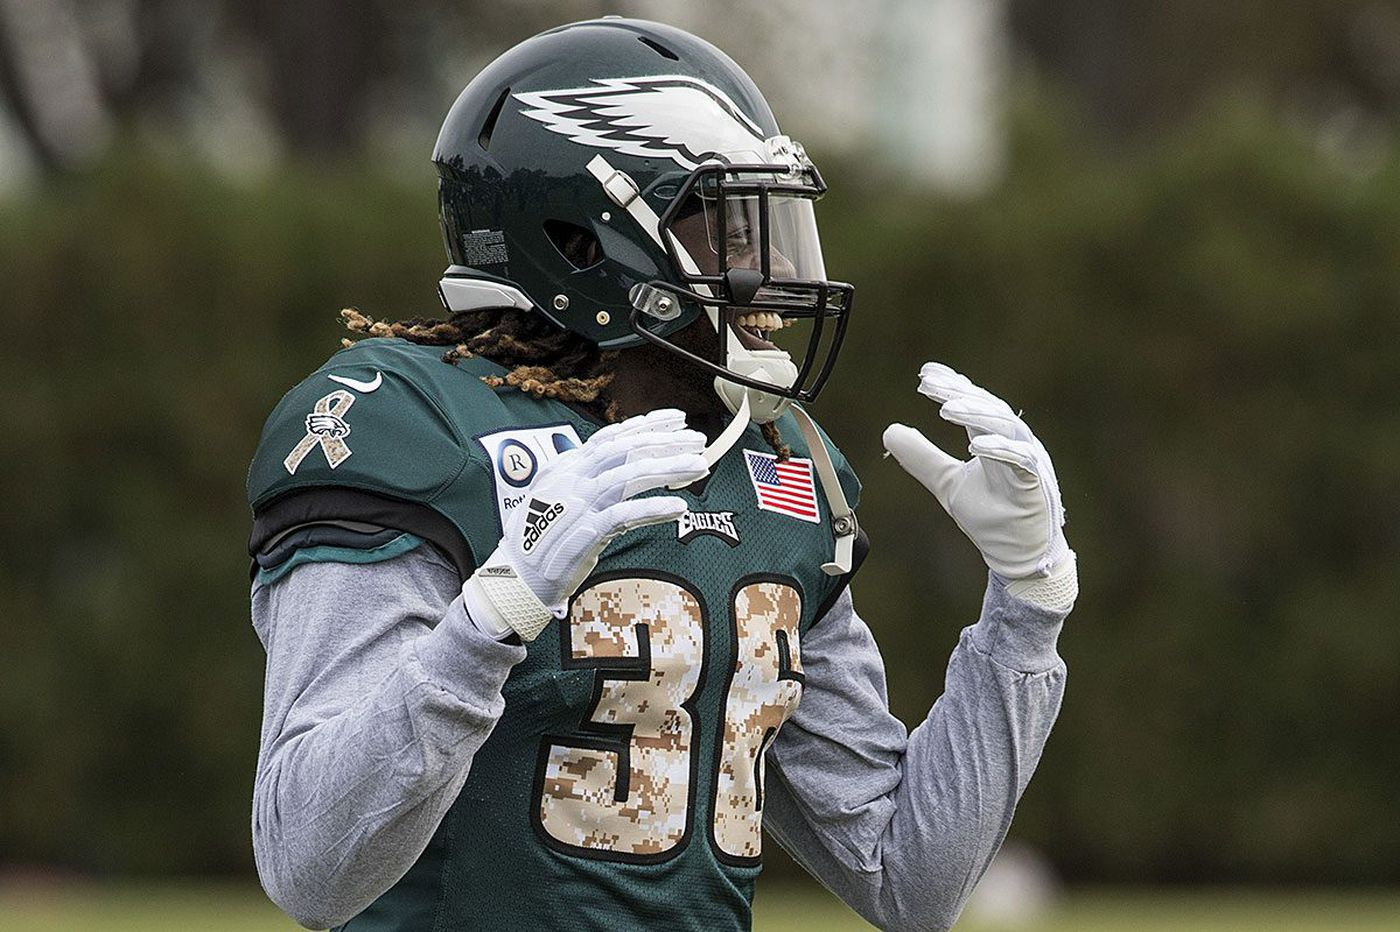 Eagles' Jay Ajayi and his baggage reminds Doug Pederson of Andre Rison joining Packers | Marcus Hayes